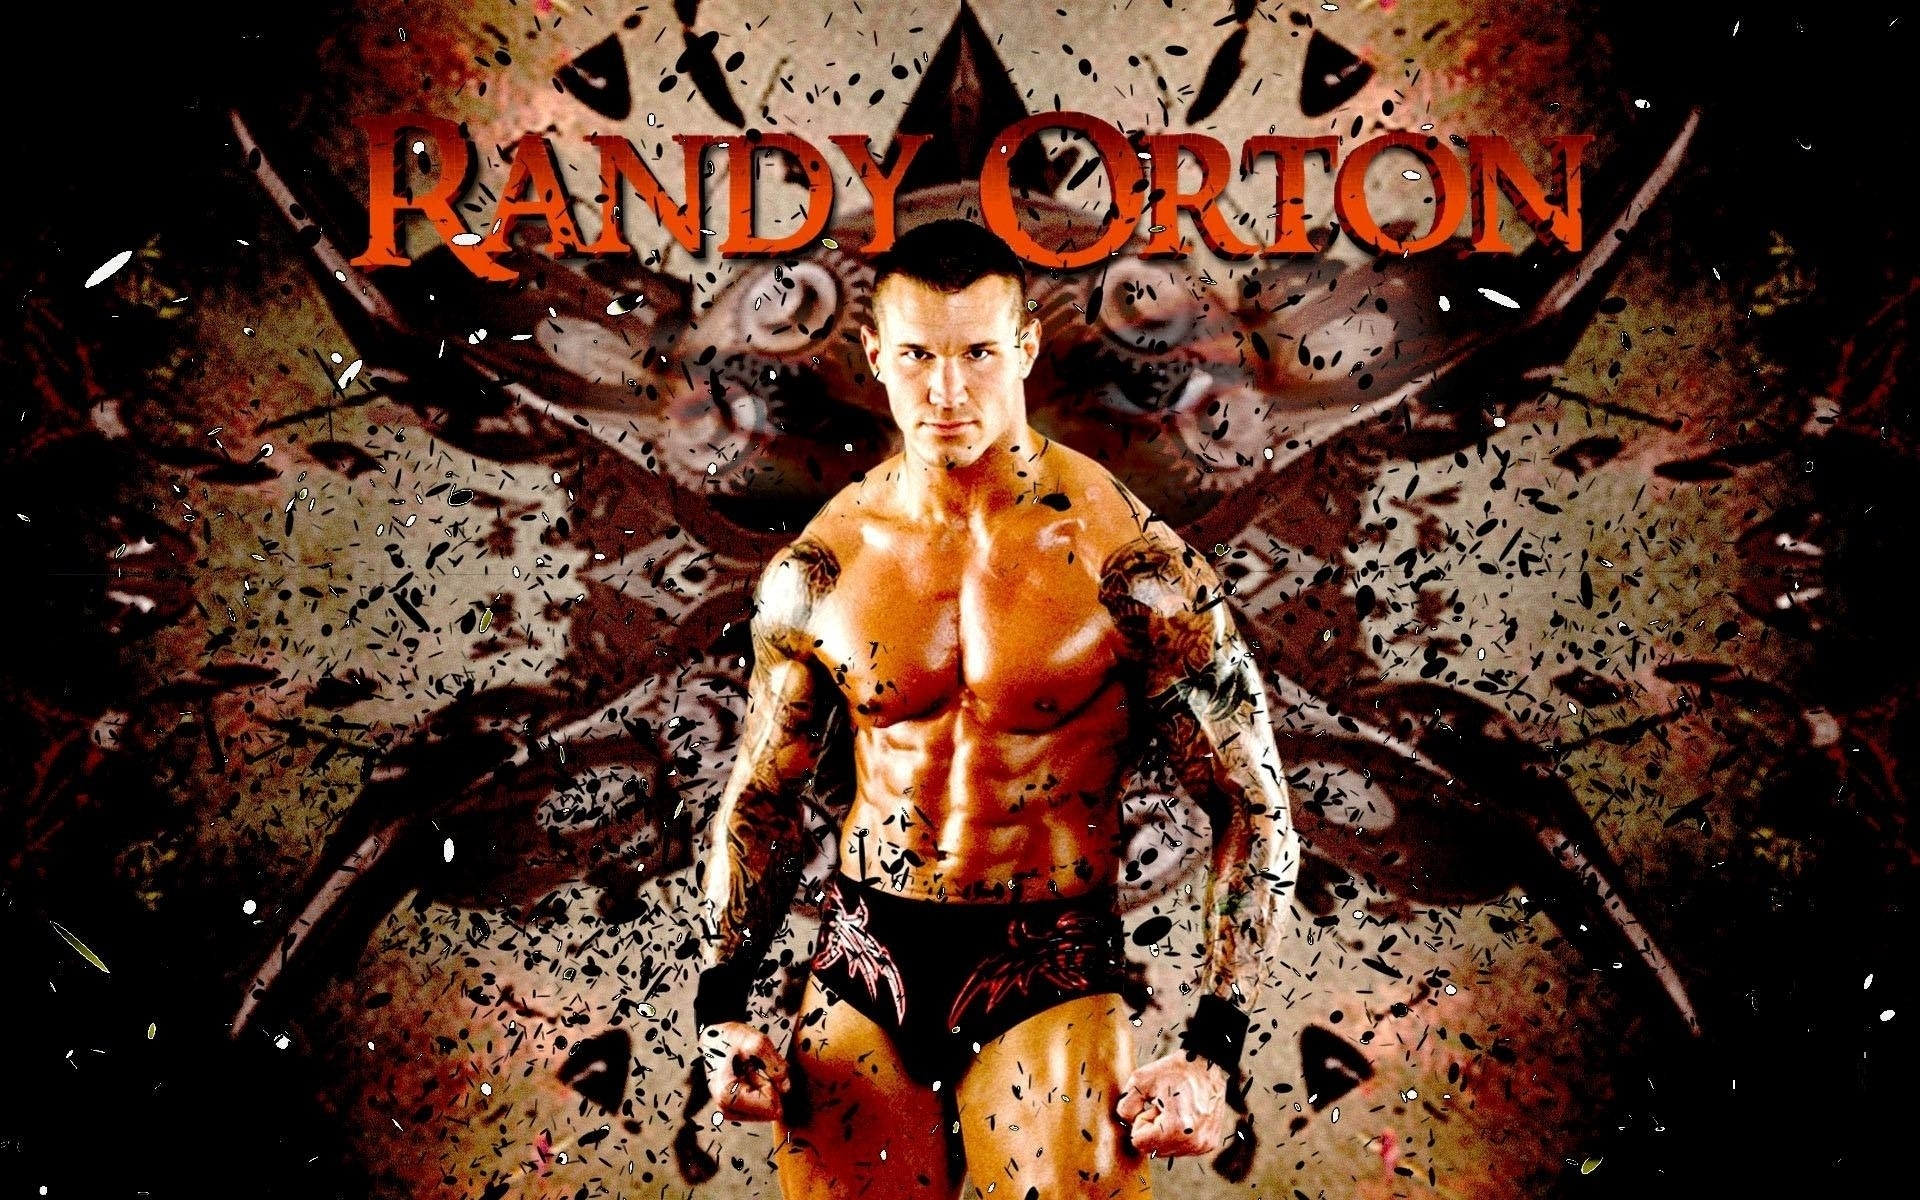 free download wwe superstars hd wallpapers randy orton